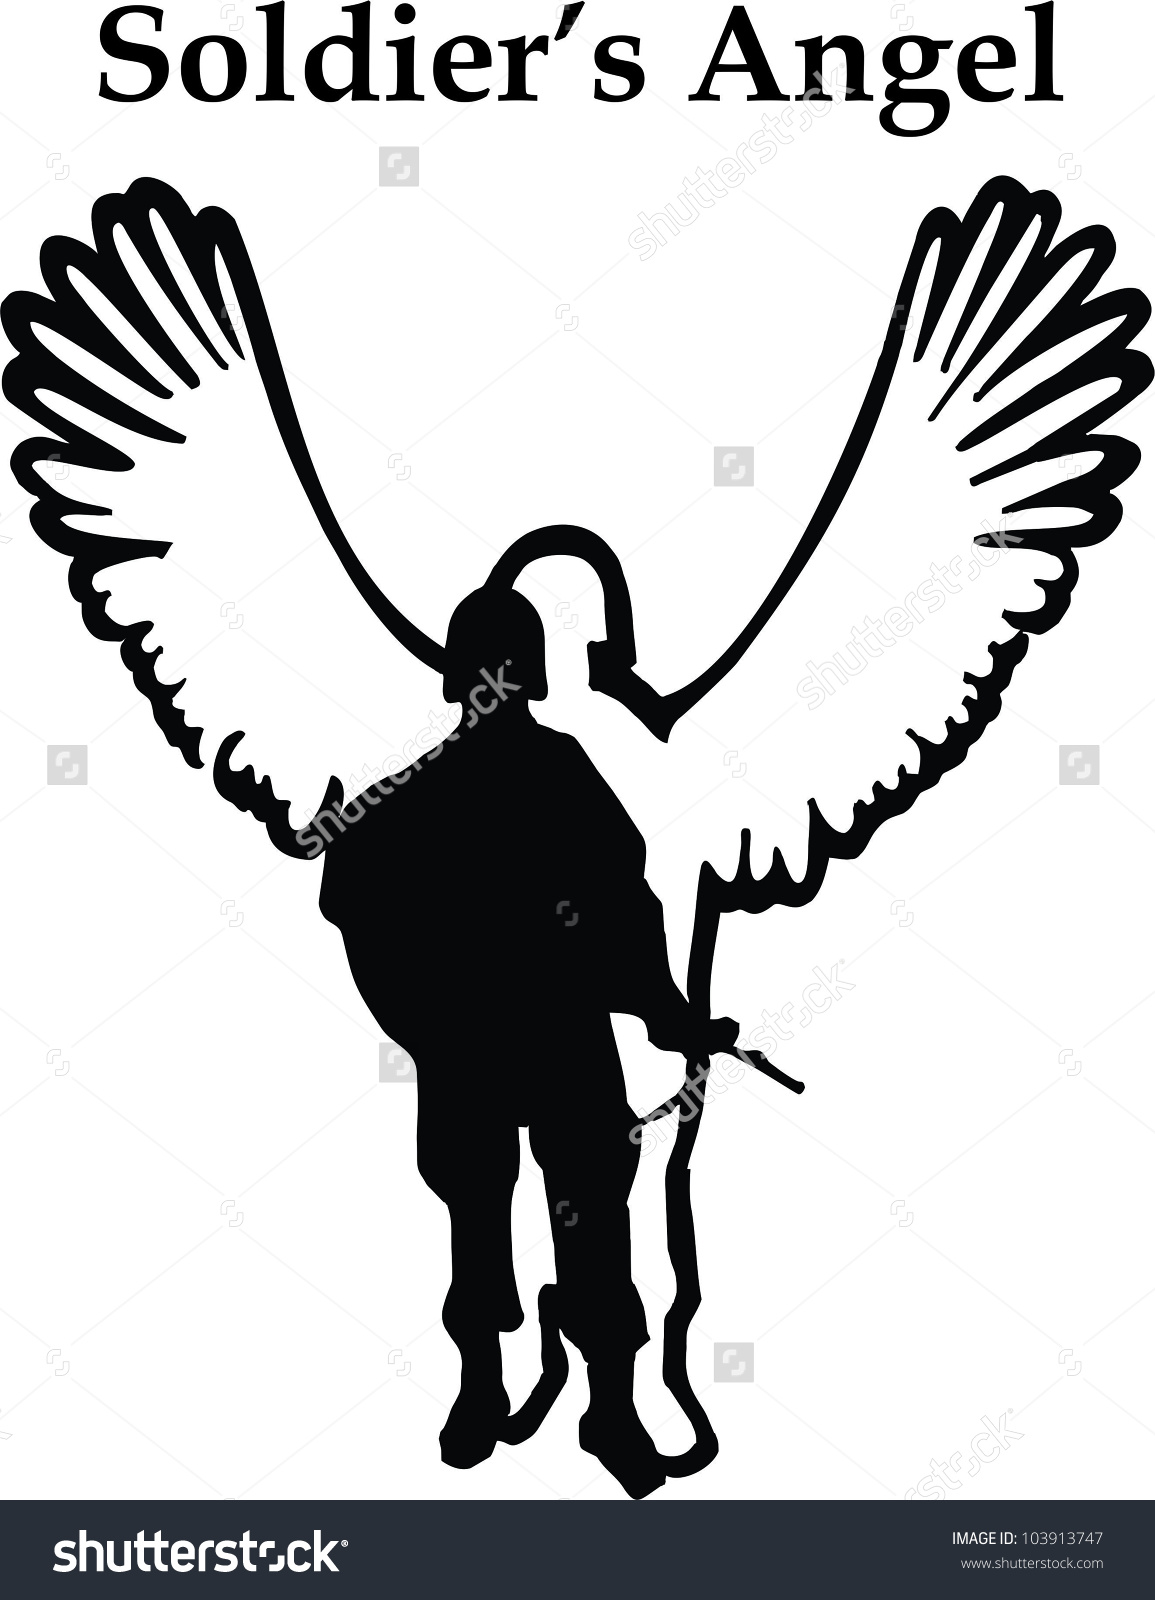 Soldiers Angel Fallen Hero Memorial Clip Stock Vector 103913747.